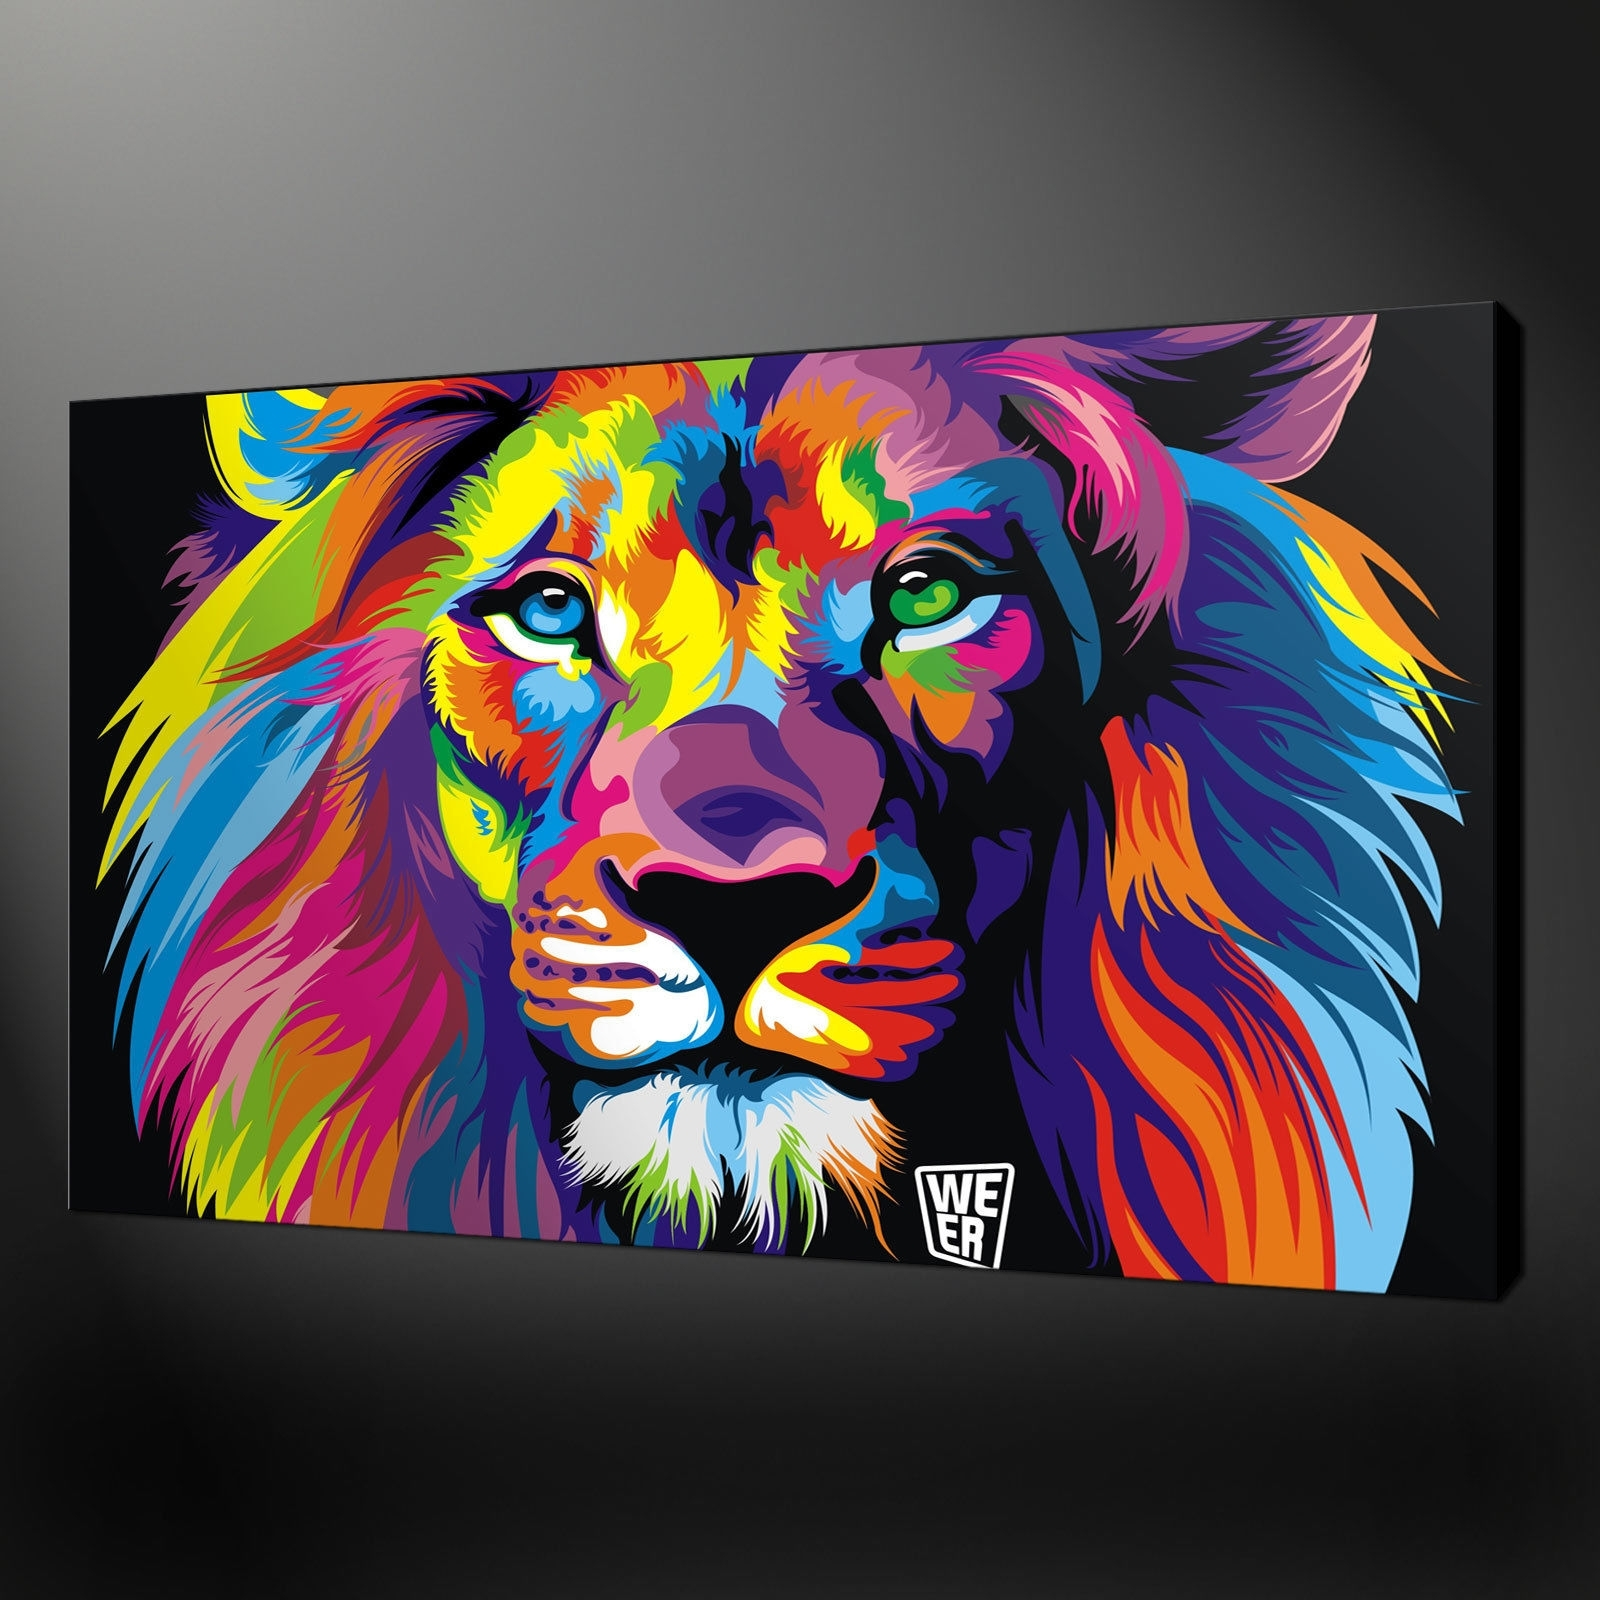 Abstract Lion Quality Canvas Print Picture Wall Art Design Free Uk Regarding Latest Abstract Lion Wall Art (View 1 of 20)